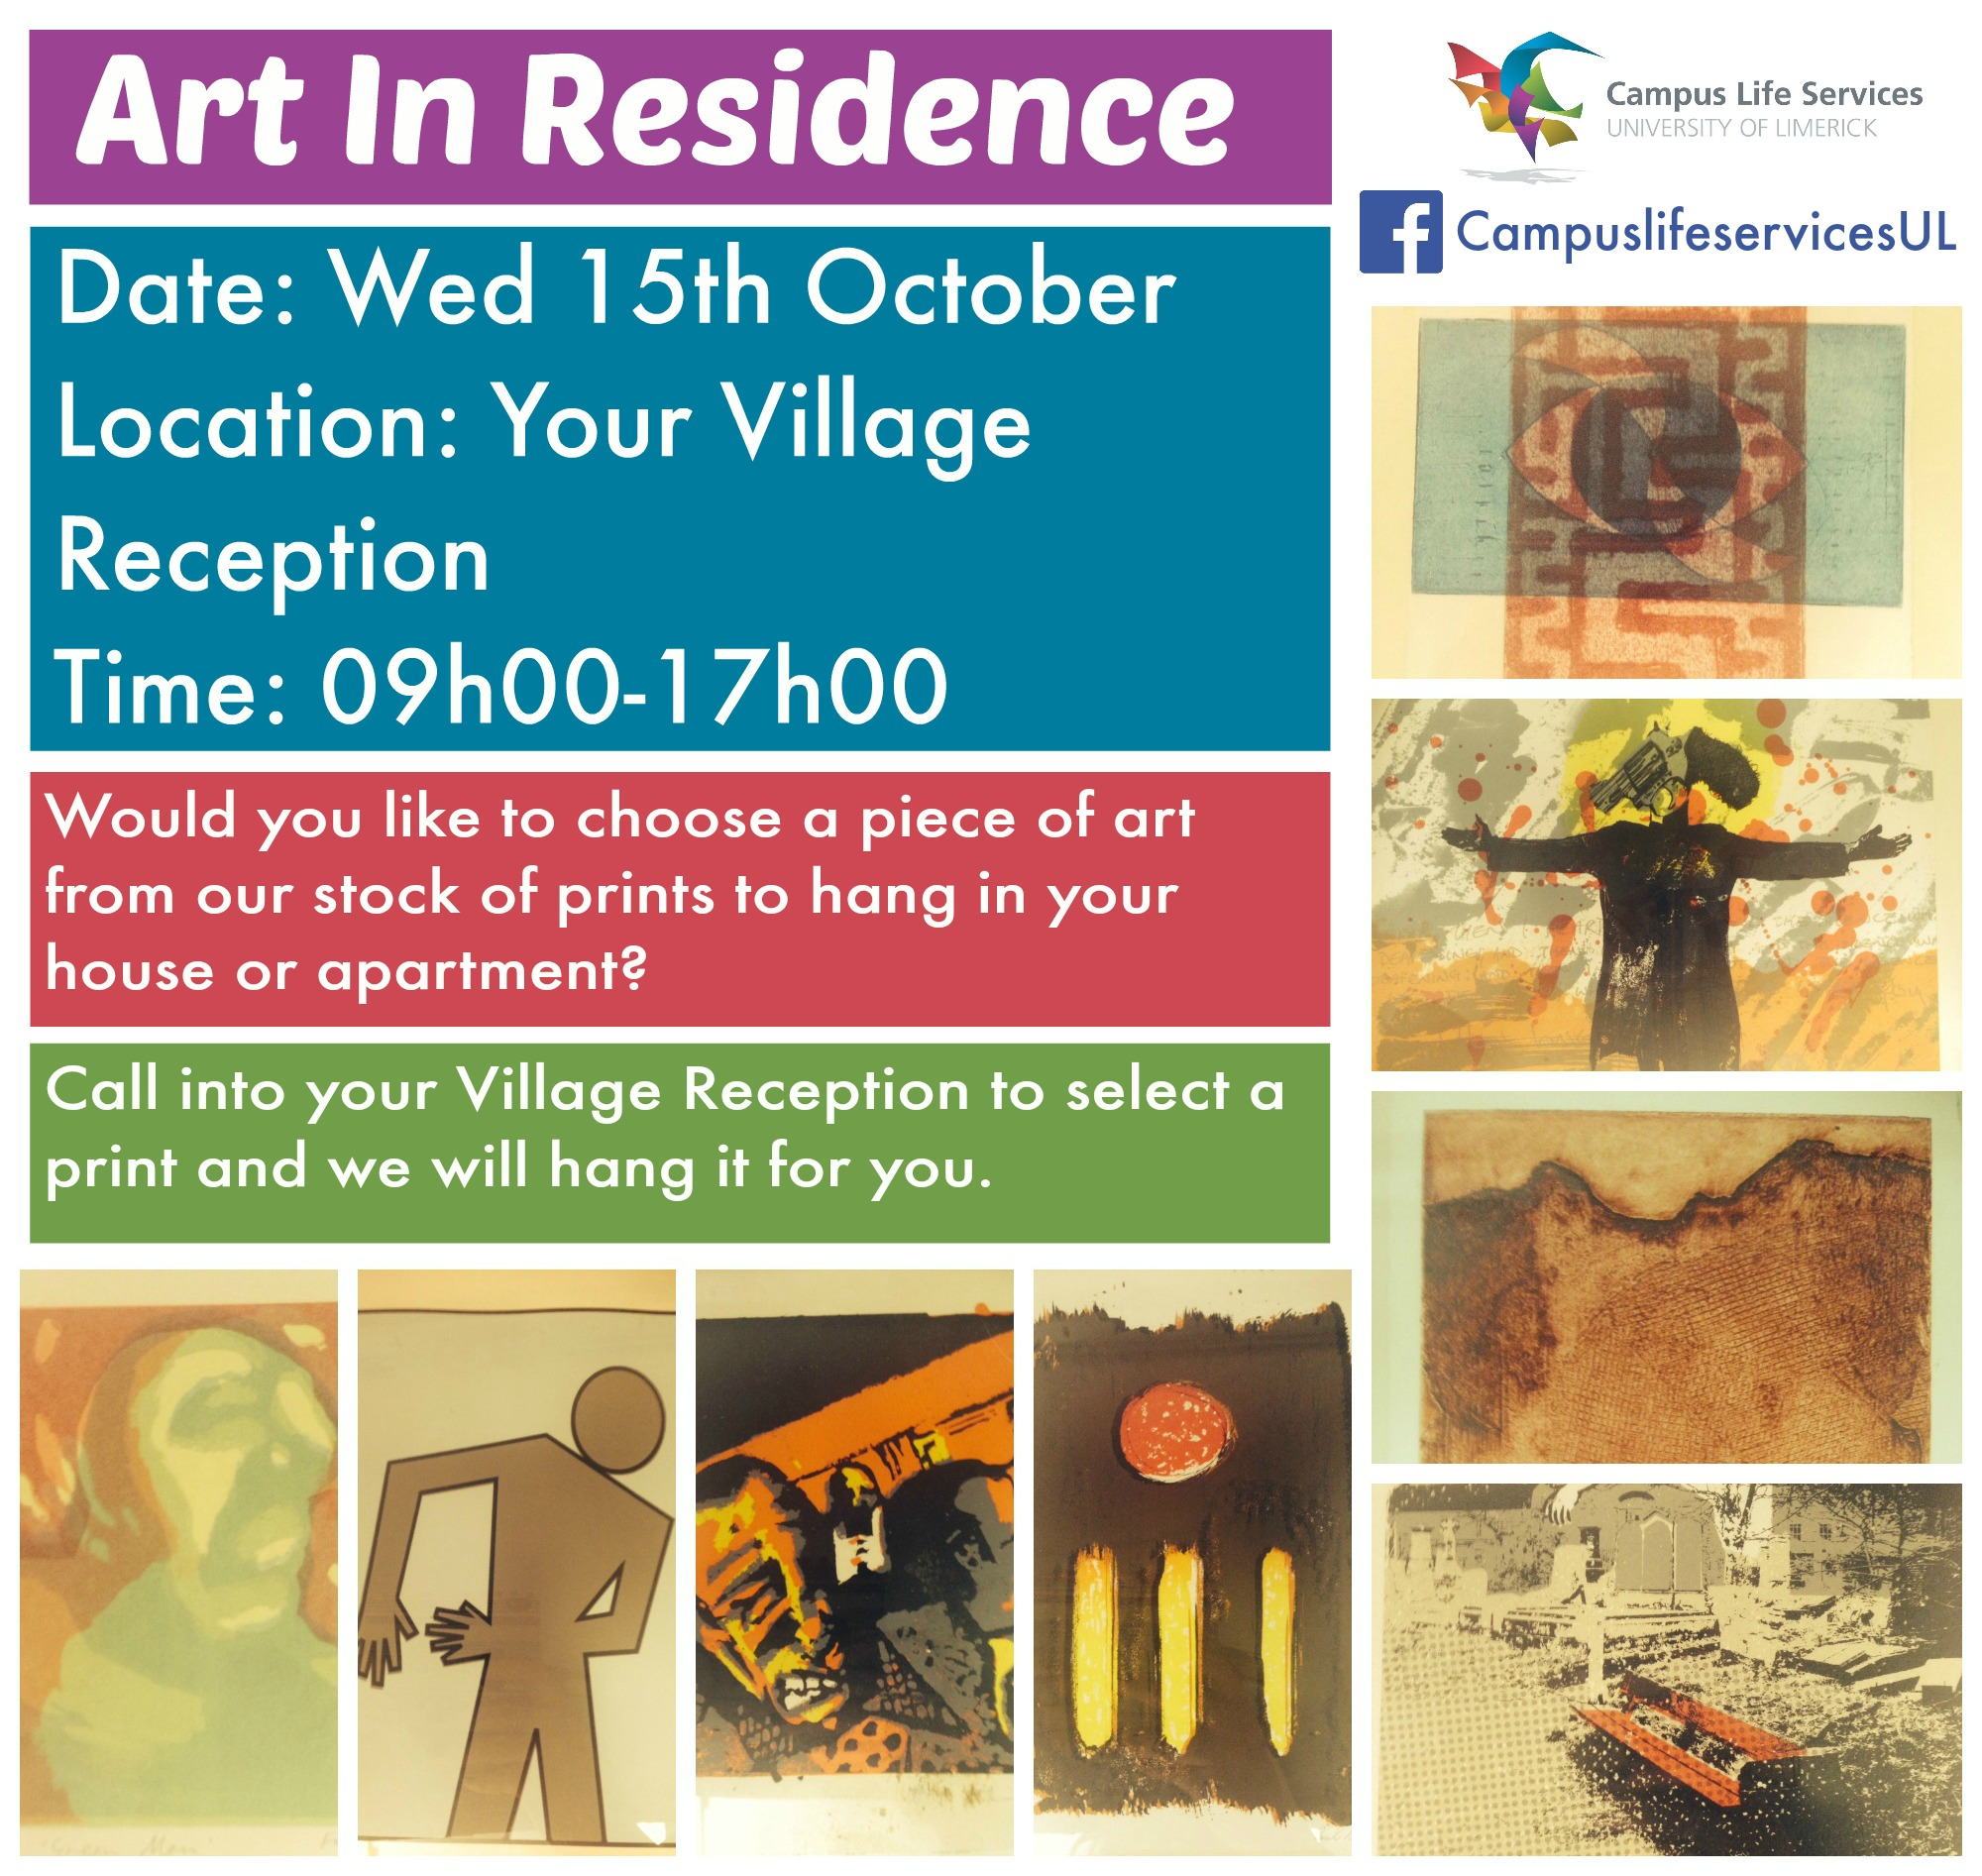 Art in Residence 'AIR' Programme